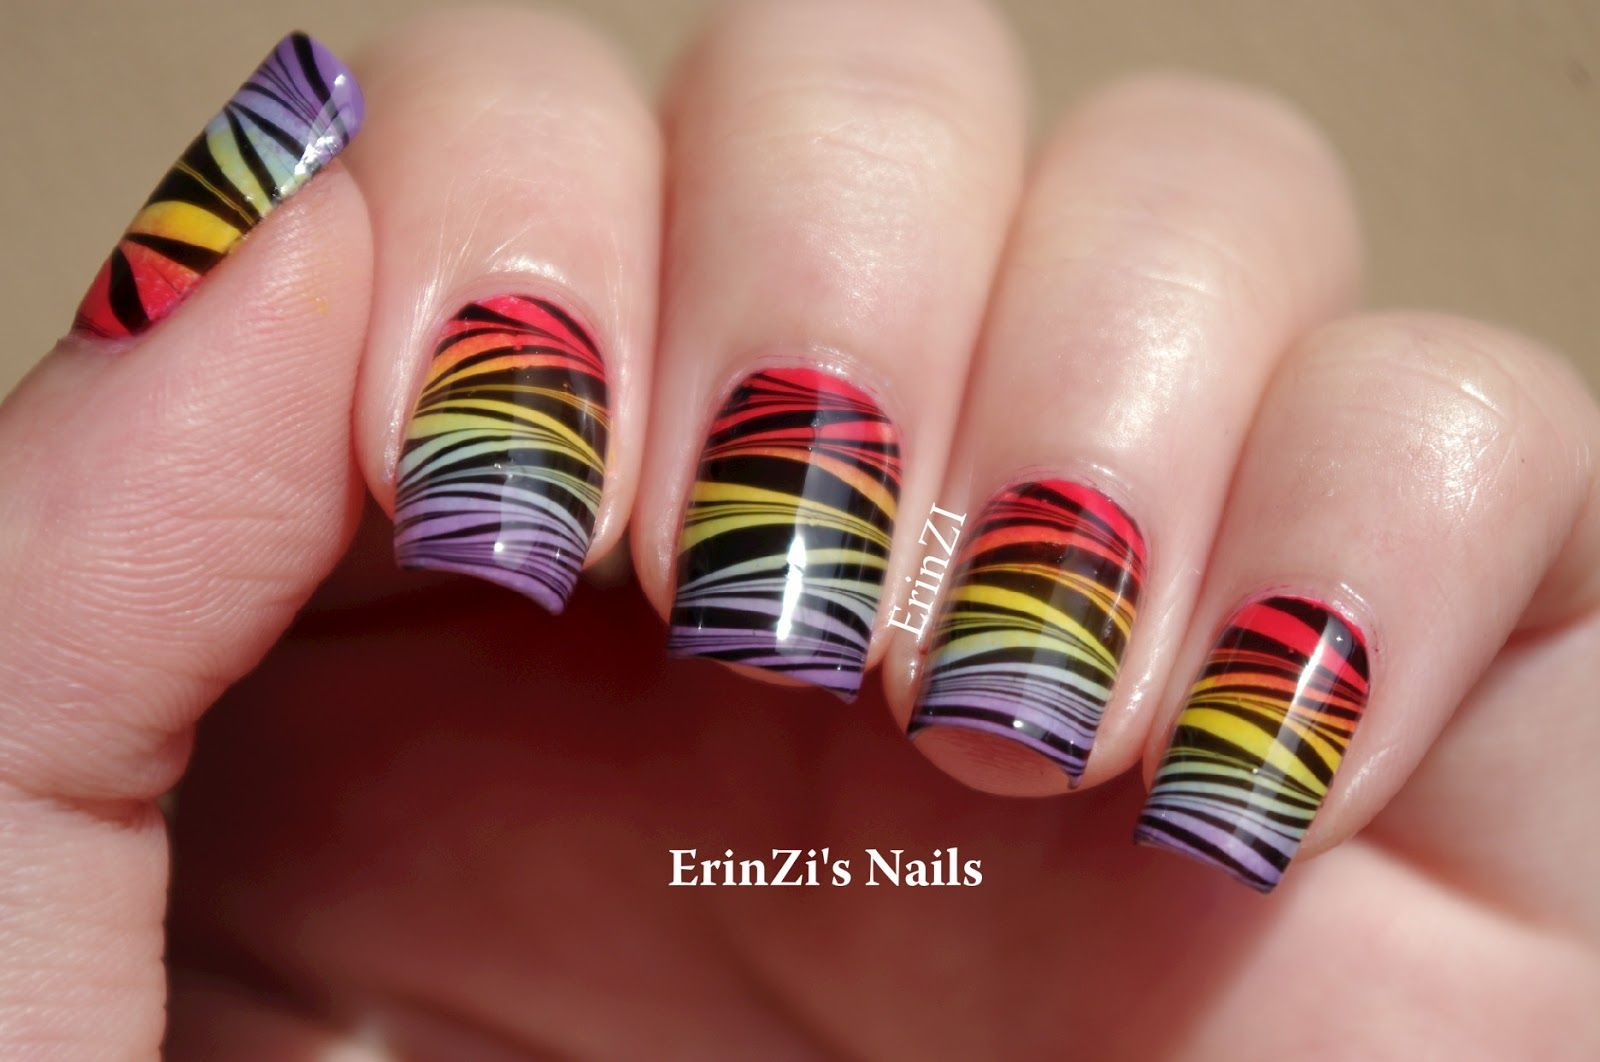 How to do the water marble technique | Nails | Pinterest | Marbles ...